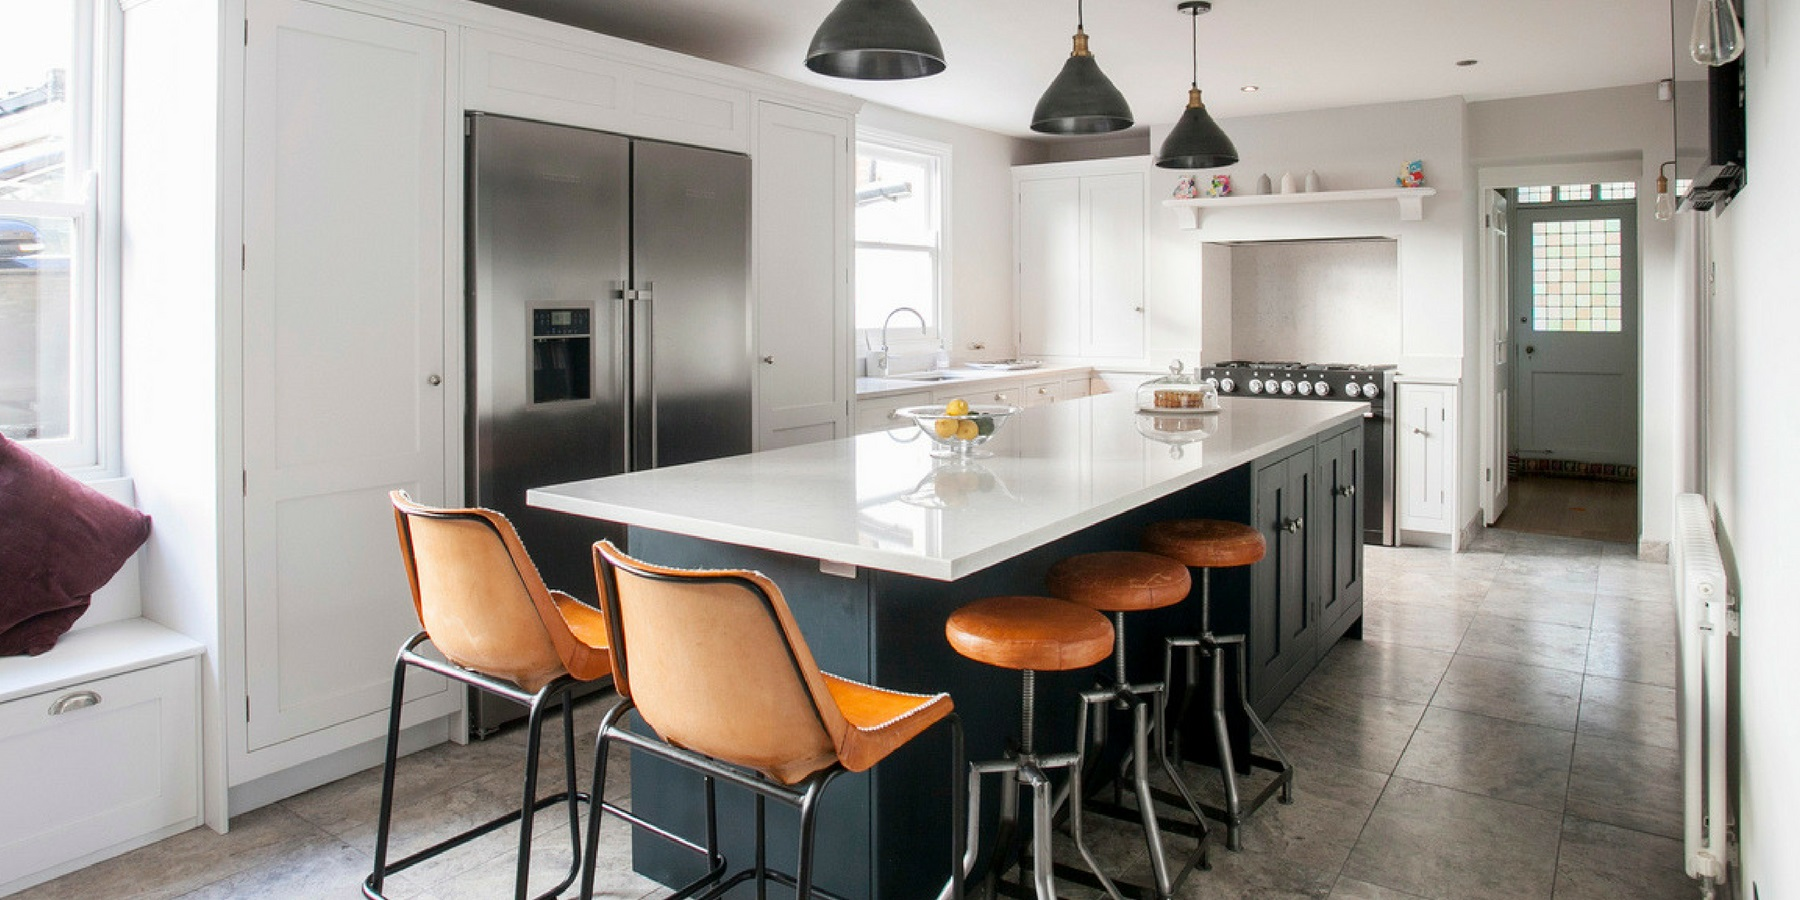 Planning A Family Kitchen  -